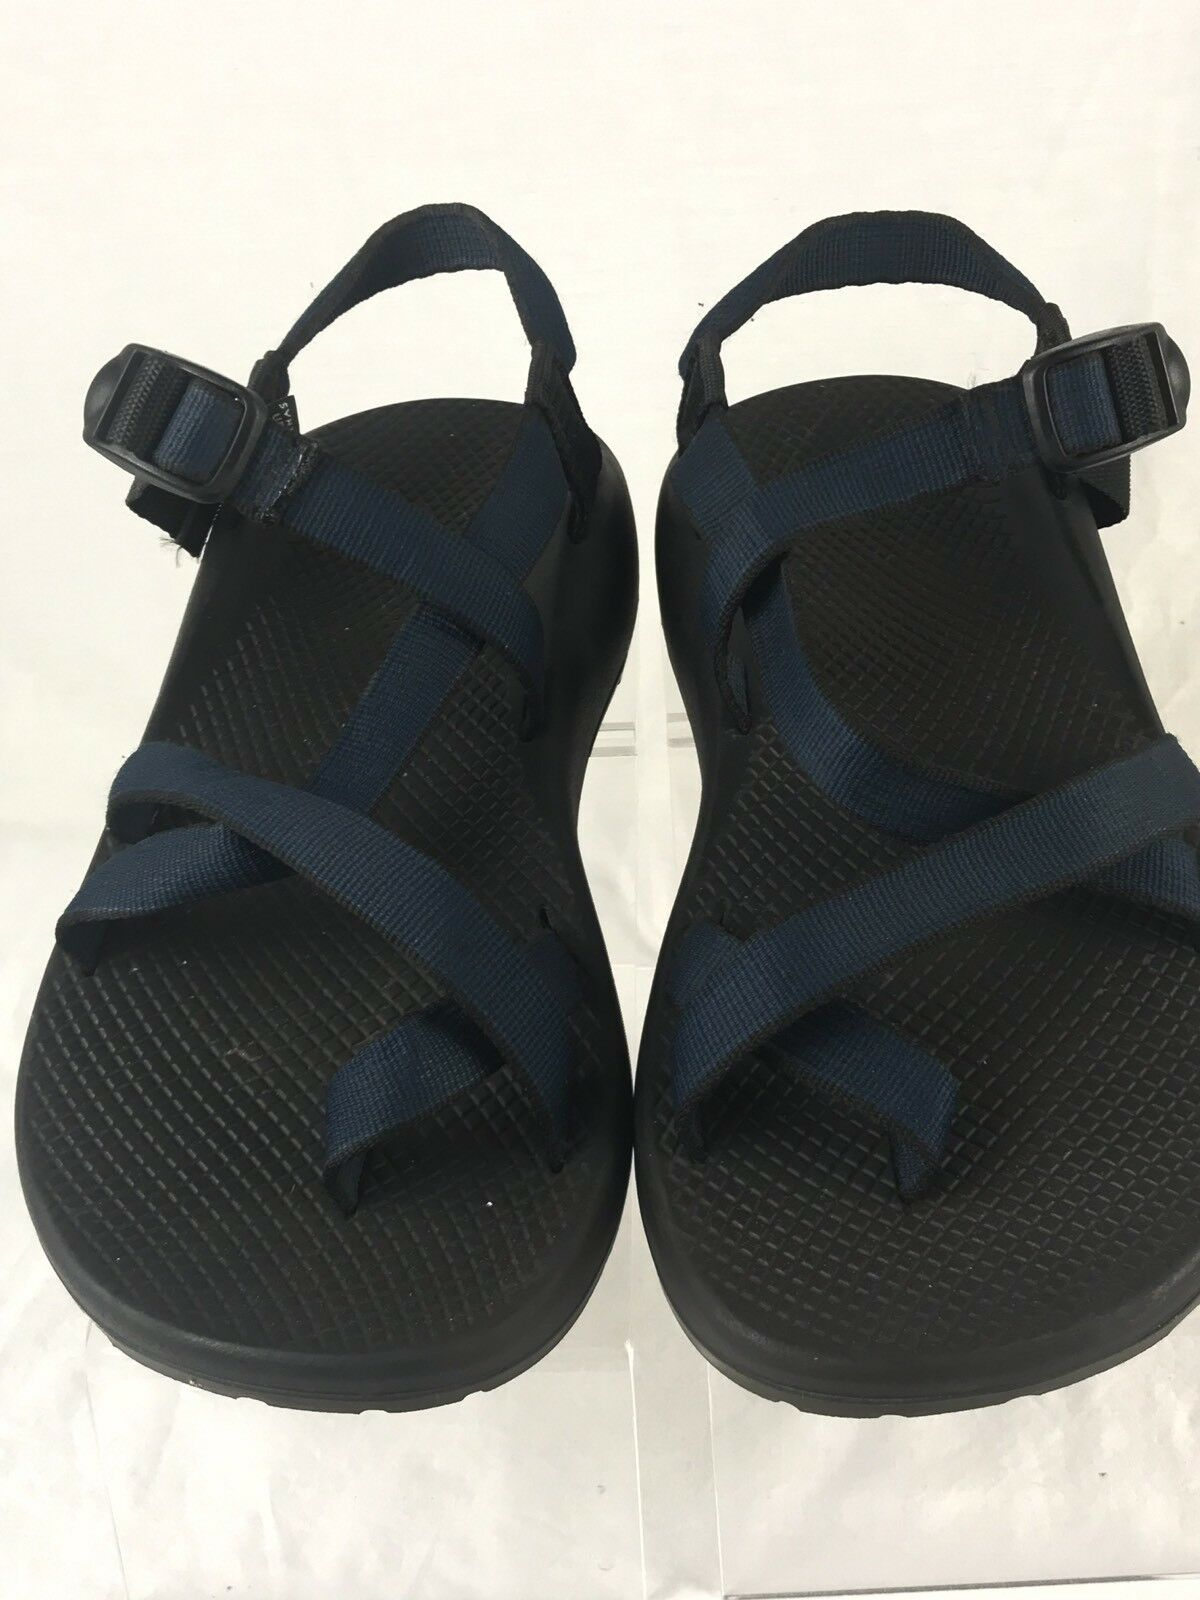 CHACO Z1 CLASSIC SANDALS, MEN'S SIZE 10 EUC bluee Made In colorado